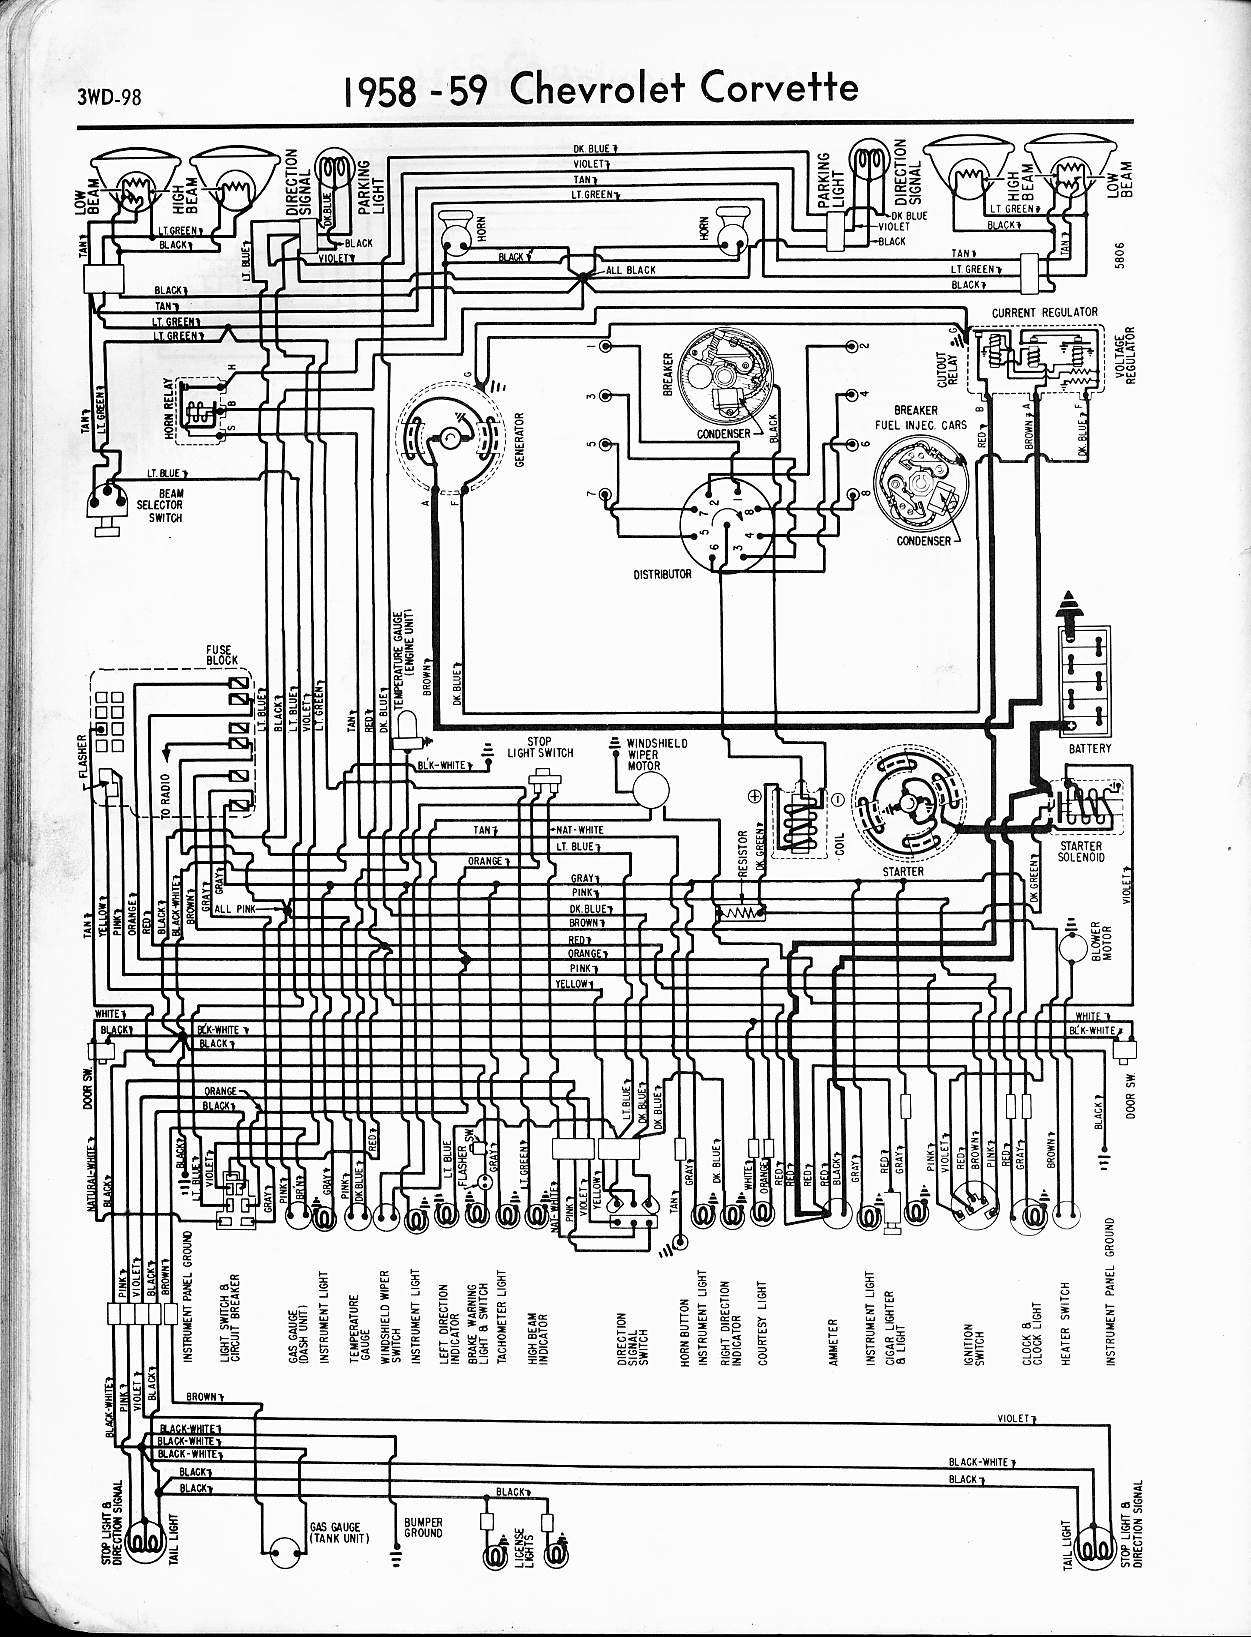 hight resolution of international truck wiring diagram schematic 1958 corvette 2q